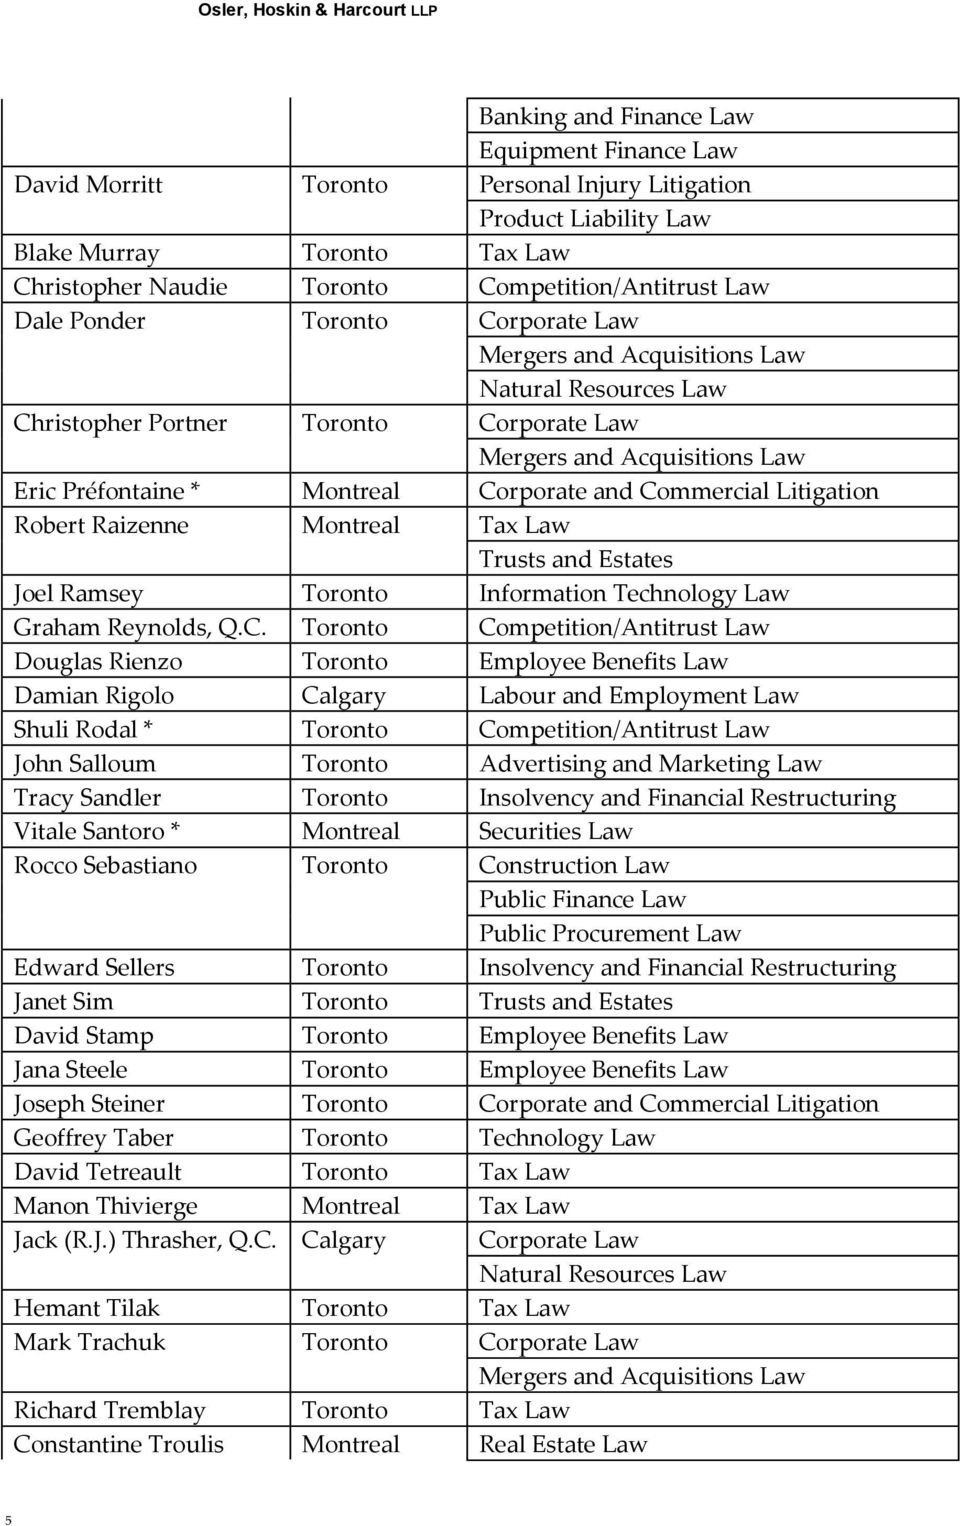 Competition/Antitrust Law Douglas Rienzo Toronto Employee Benefits Law Damian Rigolo Calgary Labour and Employment Law Shuli Rodal * Toronto Competition/Antitrust Law John Salloum Toronto Advertising